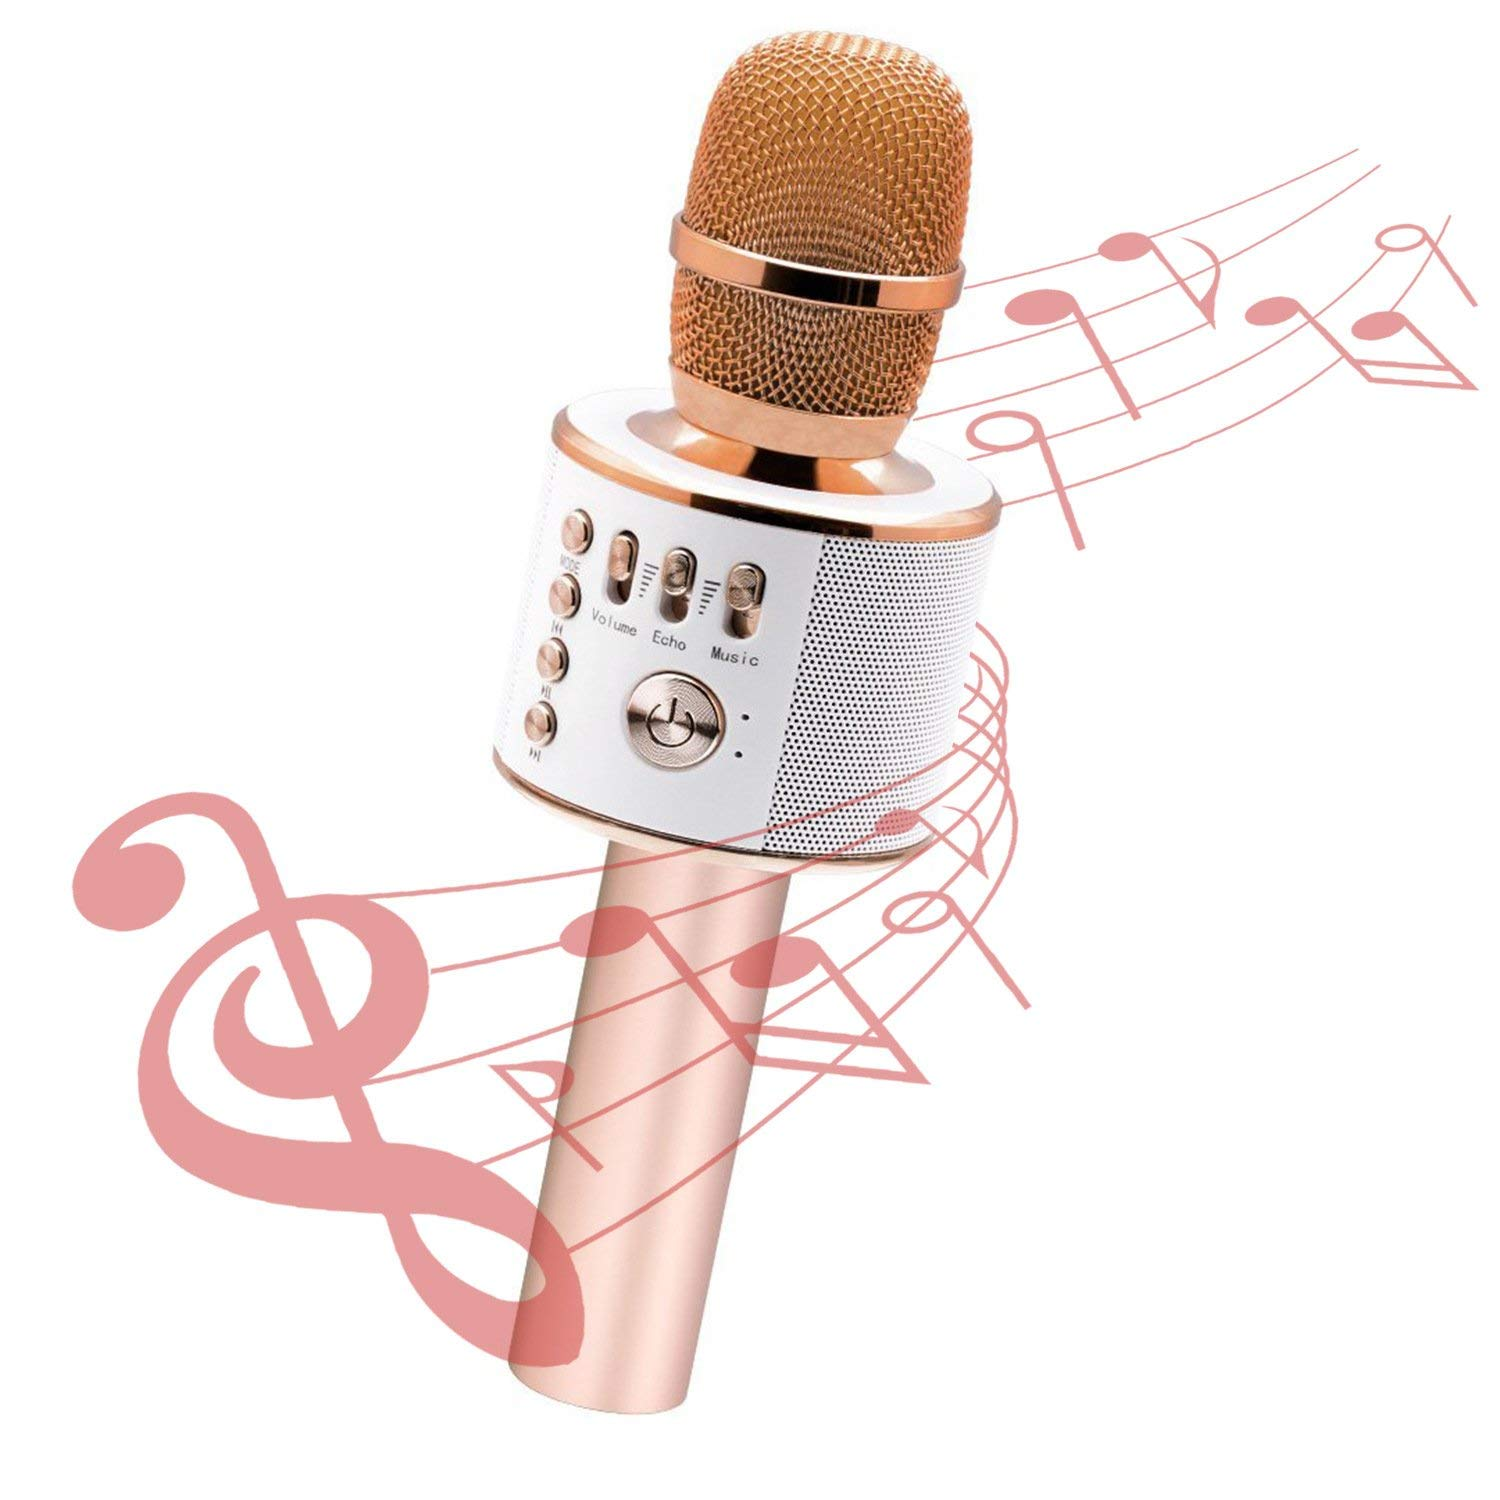 Cheryu Wireless Bluetooth Microphone for iPhone/Android/iPad/Sony/TV/PC and All Smartphone, Portable Handheld 3-in-1 Multi-function Karaoke Mic for Kids,Adults Home KTV Outdoor Party(Rose Gold)